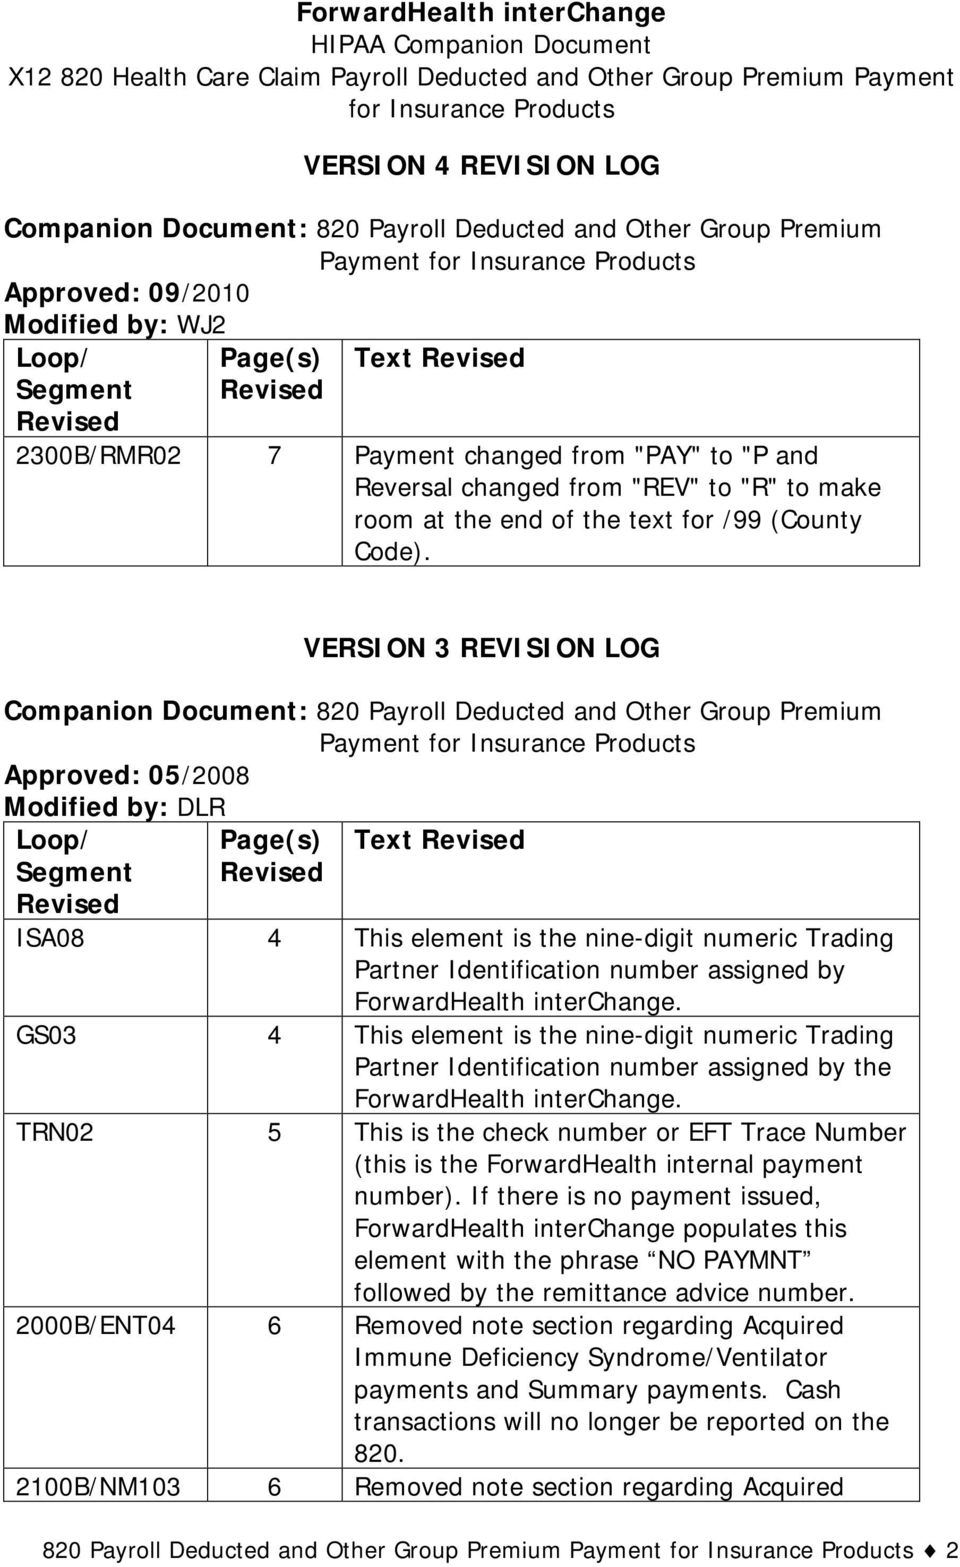 VERSION 3 REVISION LOG Companion Document: 820 Payroll Deducted and Other Group Premium Payment Approved: 05/2008 Modified by: DLR Loop/ Segment Page(s) Text ISA08 4 This element is the nine-digit